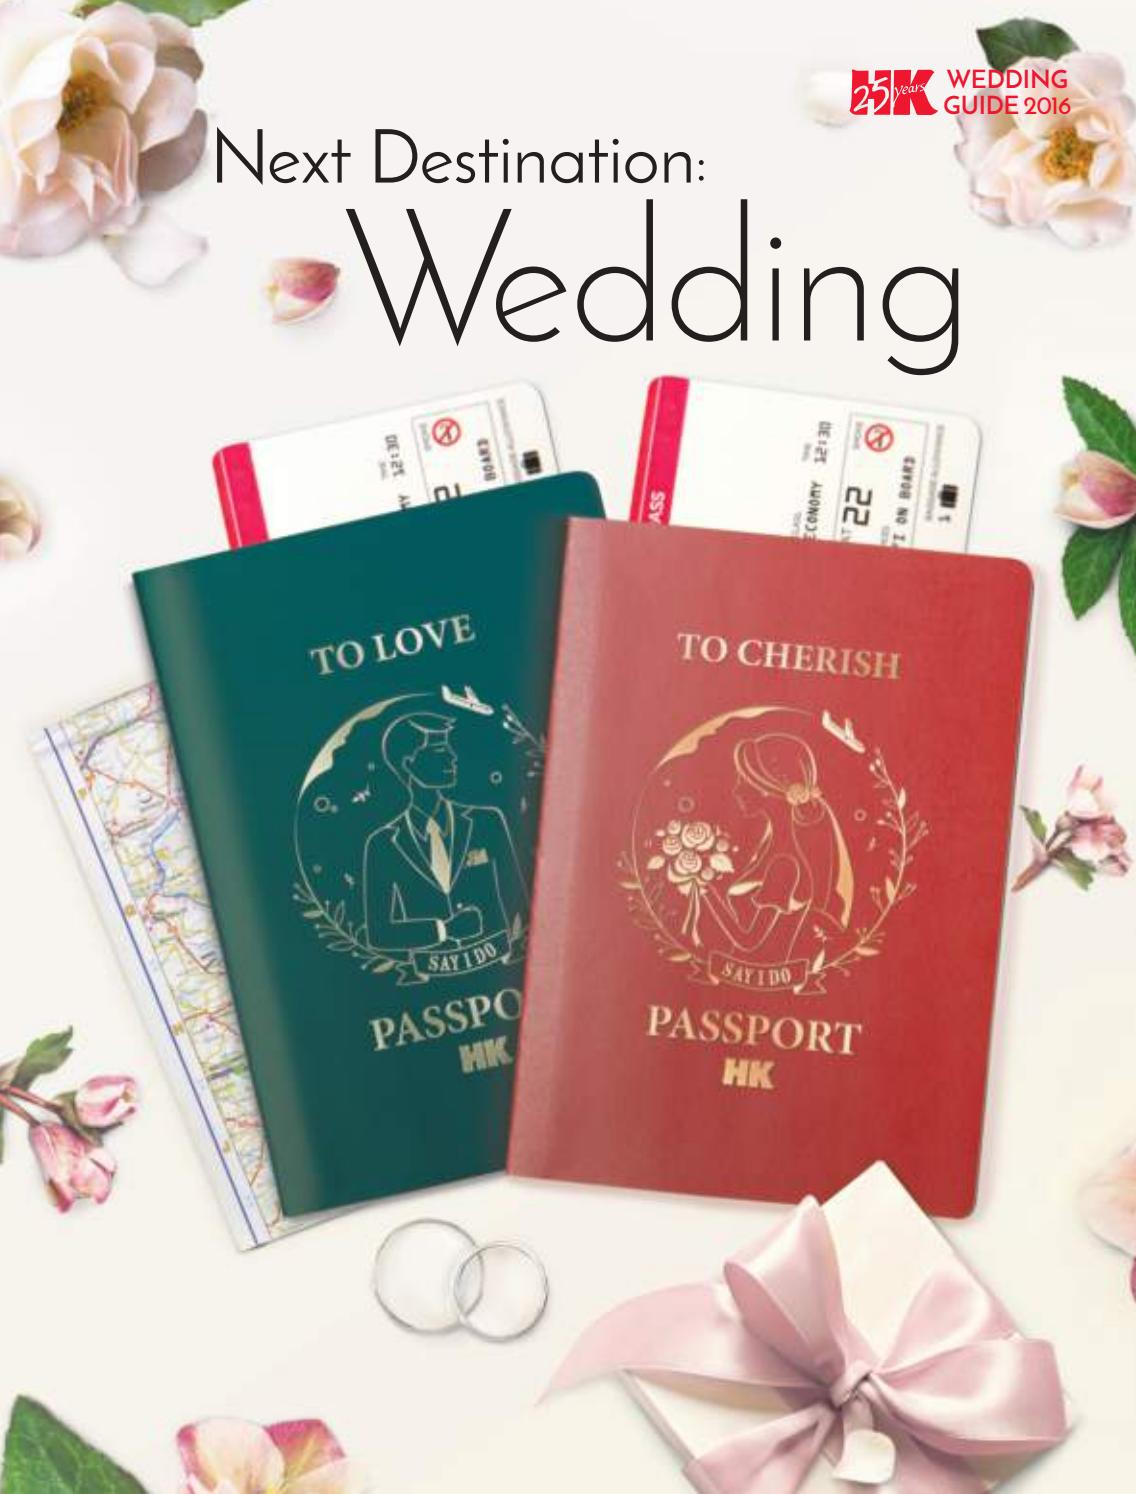 Wedding Guide 2016 by HK Magazine - issuu